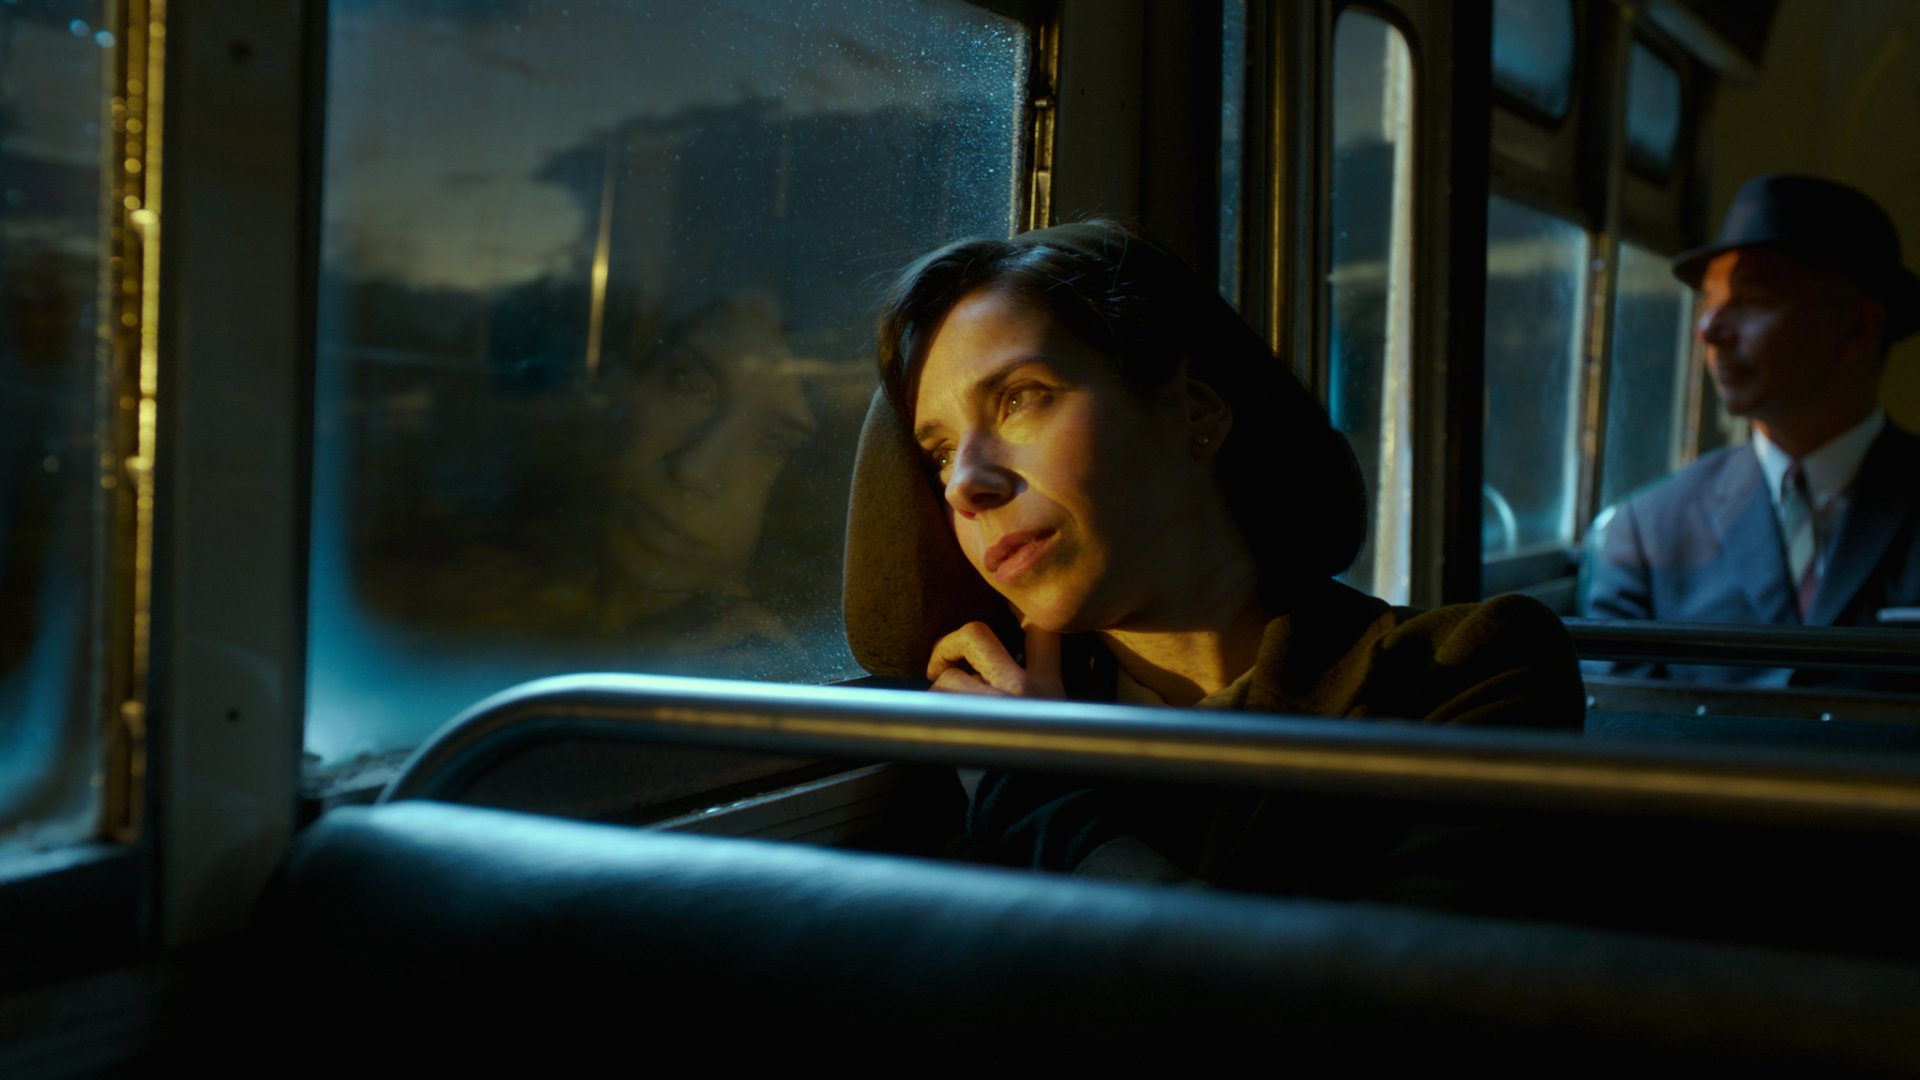 电影 - The Shape of Water  Sally Hawkins 壁纸